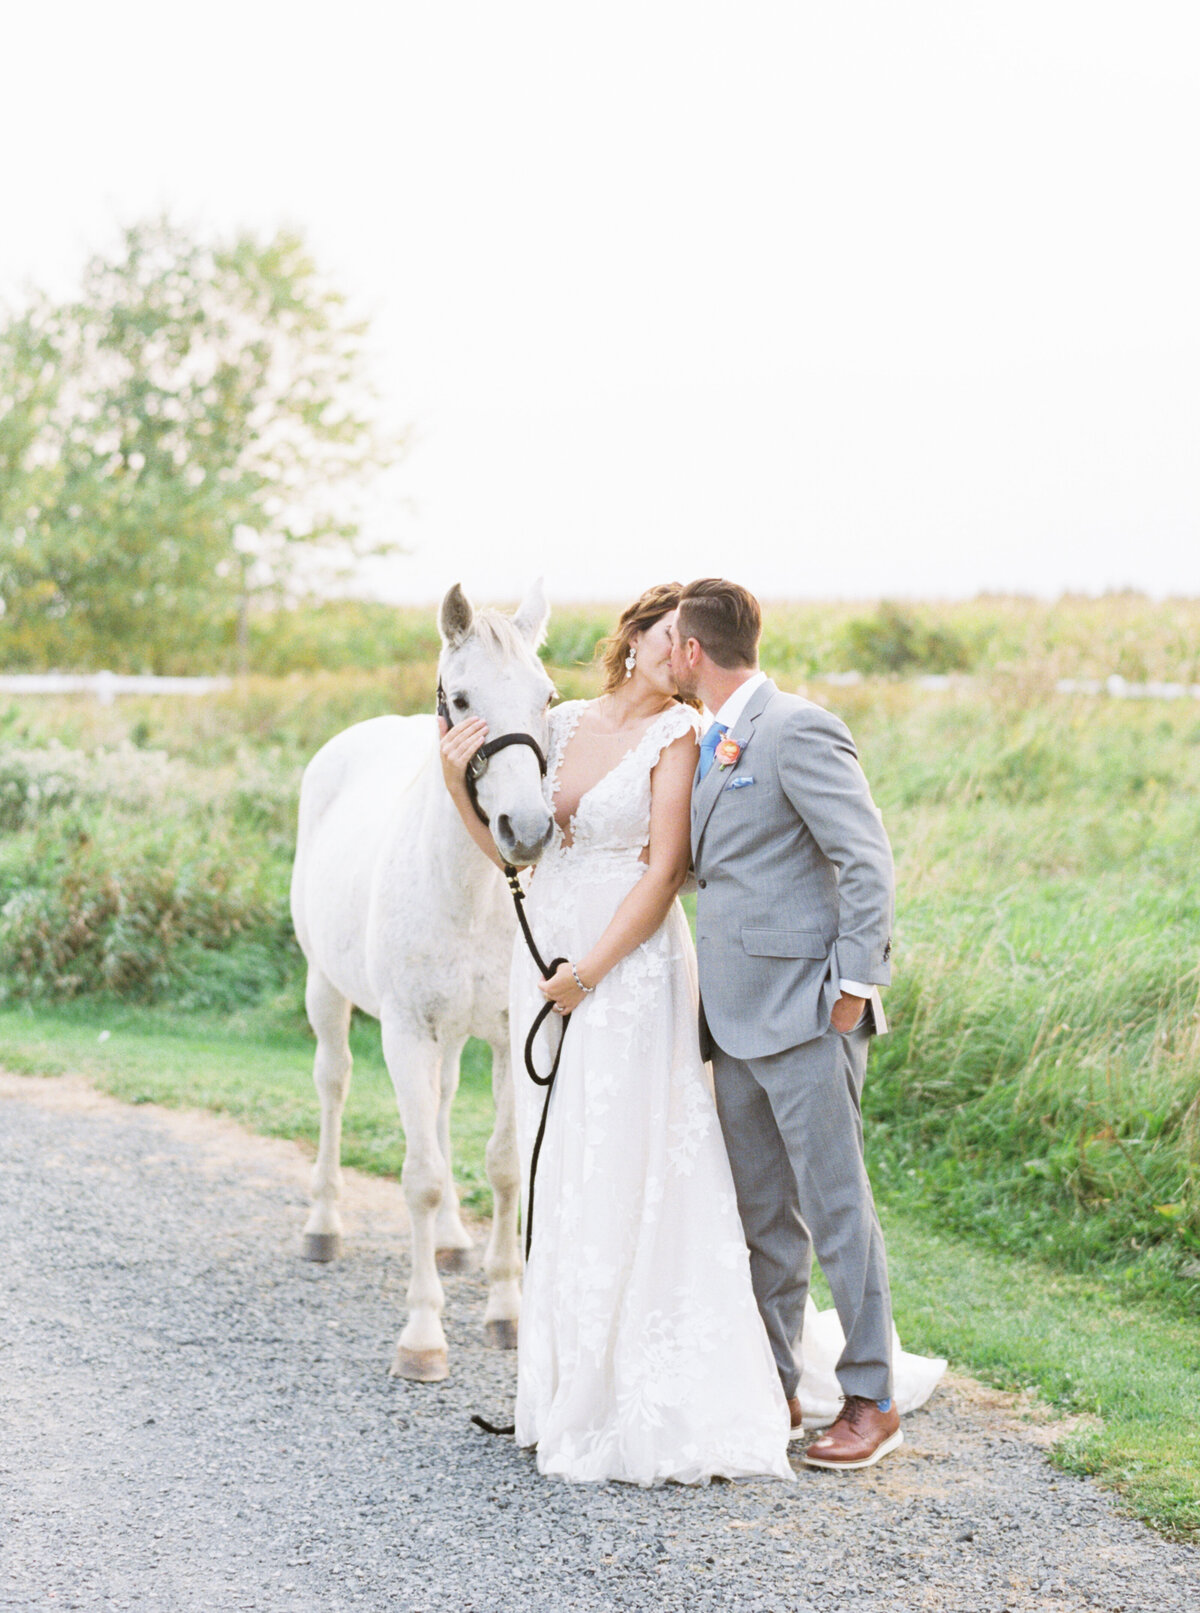 Abella Wedding Photos, Abella Minnesota, Minnesota Bride, Minnesota wedding photographer, Minneapolis wedding photographer, fine art wedding photographer, minnesota fine art wedding photographer, minneapolis wedding photographer, Horse wedding portrai